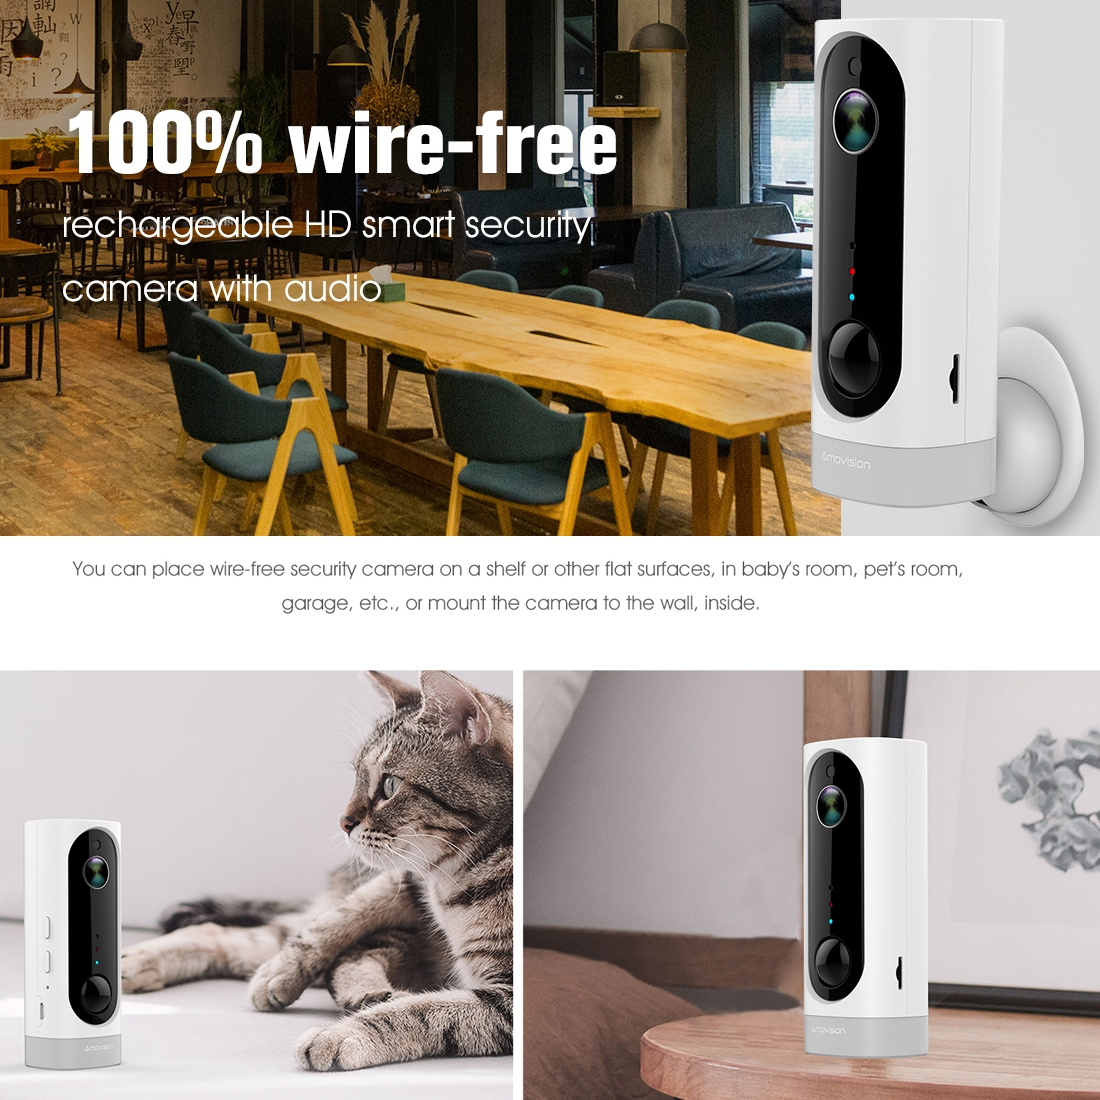 A1 WiFi Wireless 720P IP Camera, Support Night Vision / Motion Detection / PIR Motion Sensor, Two-way Audio, Built-in 3000mAh Rechargeable Battery